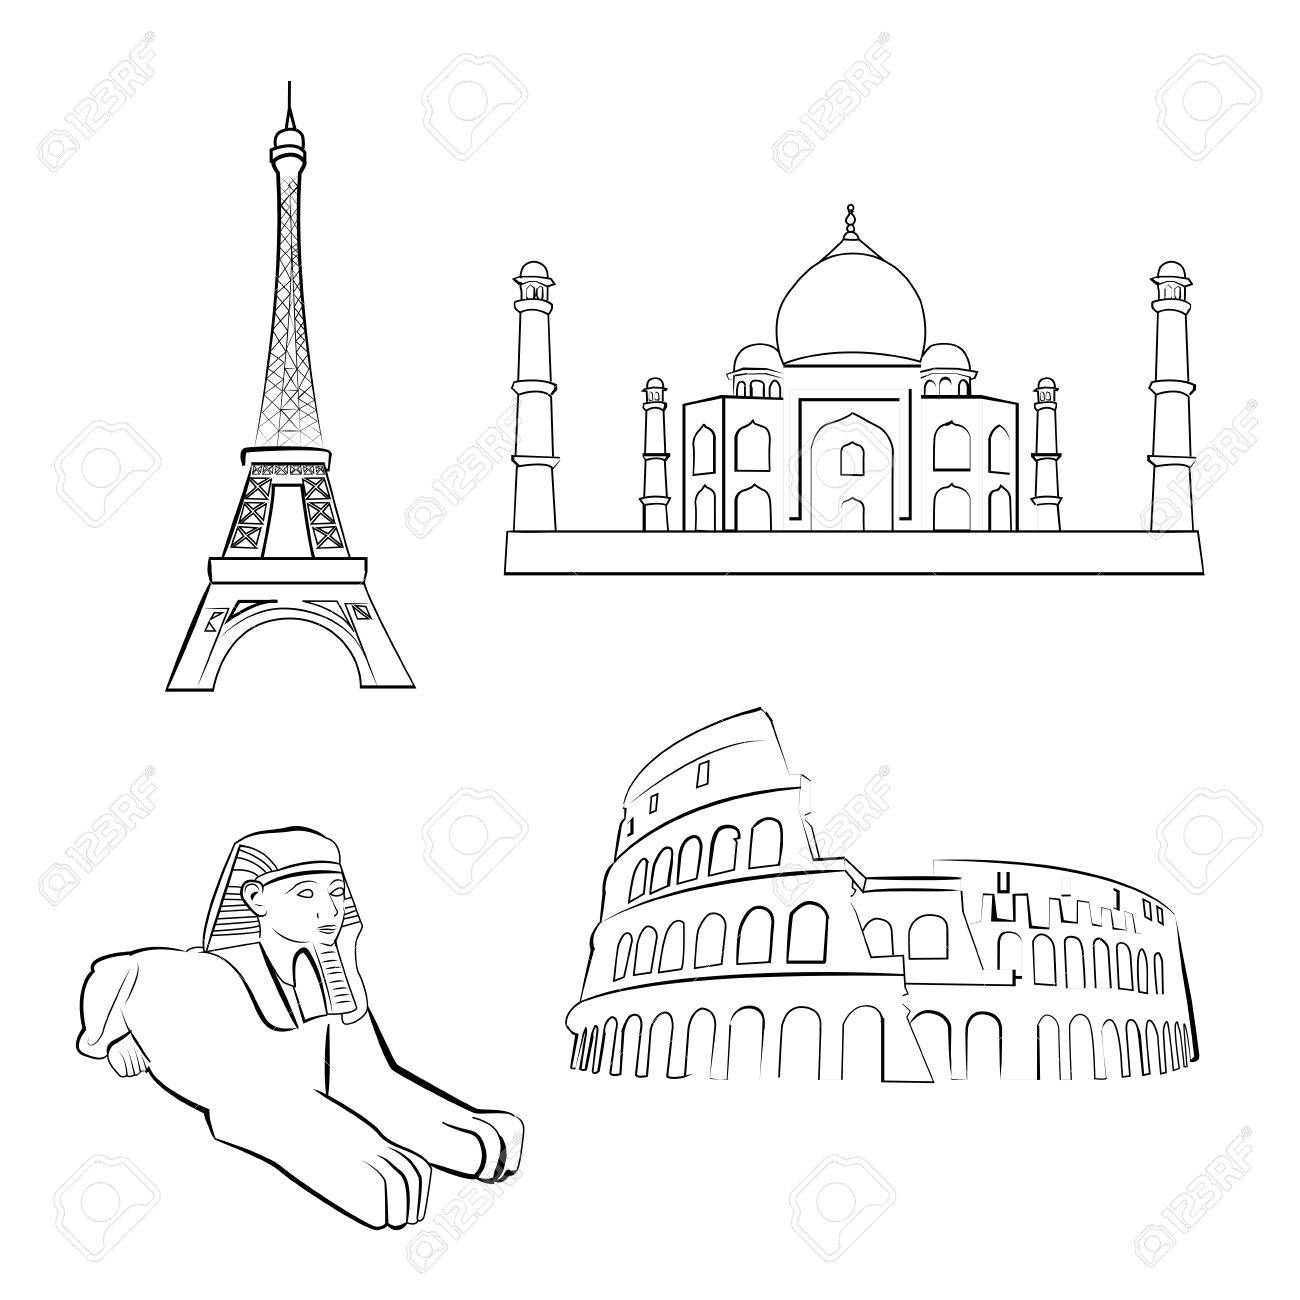 a set of sketches of famous places around the world royalty free